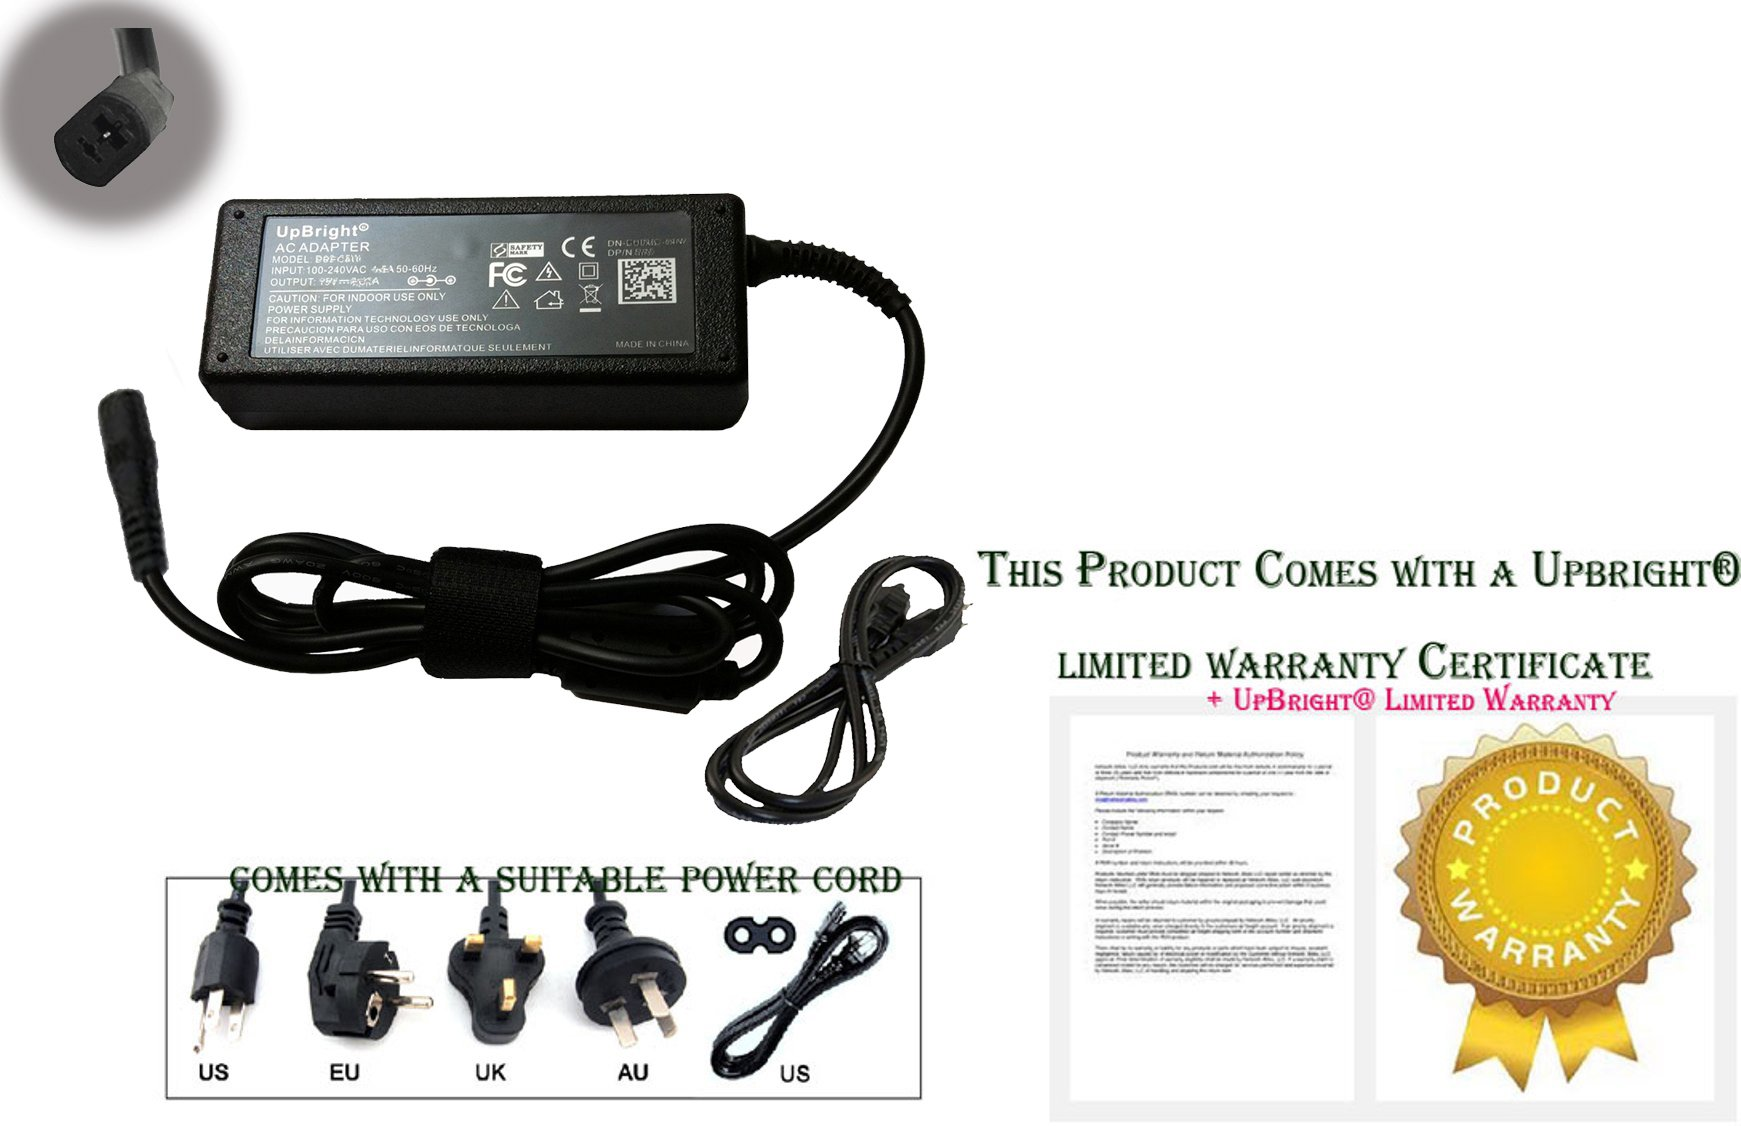 2-Prong AC//DC Adapter For Tranquil Ease IVP2900-2000 Raffel Systems Power Supply